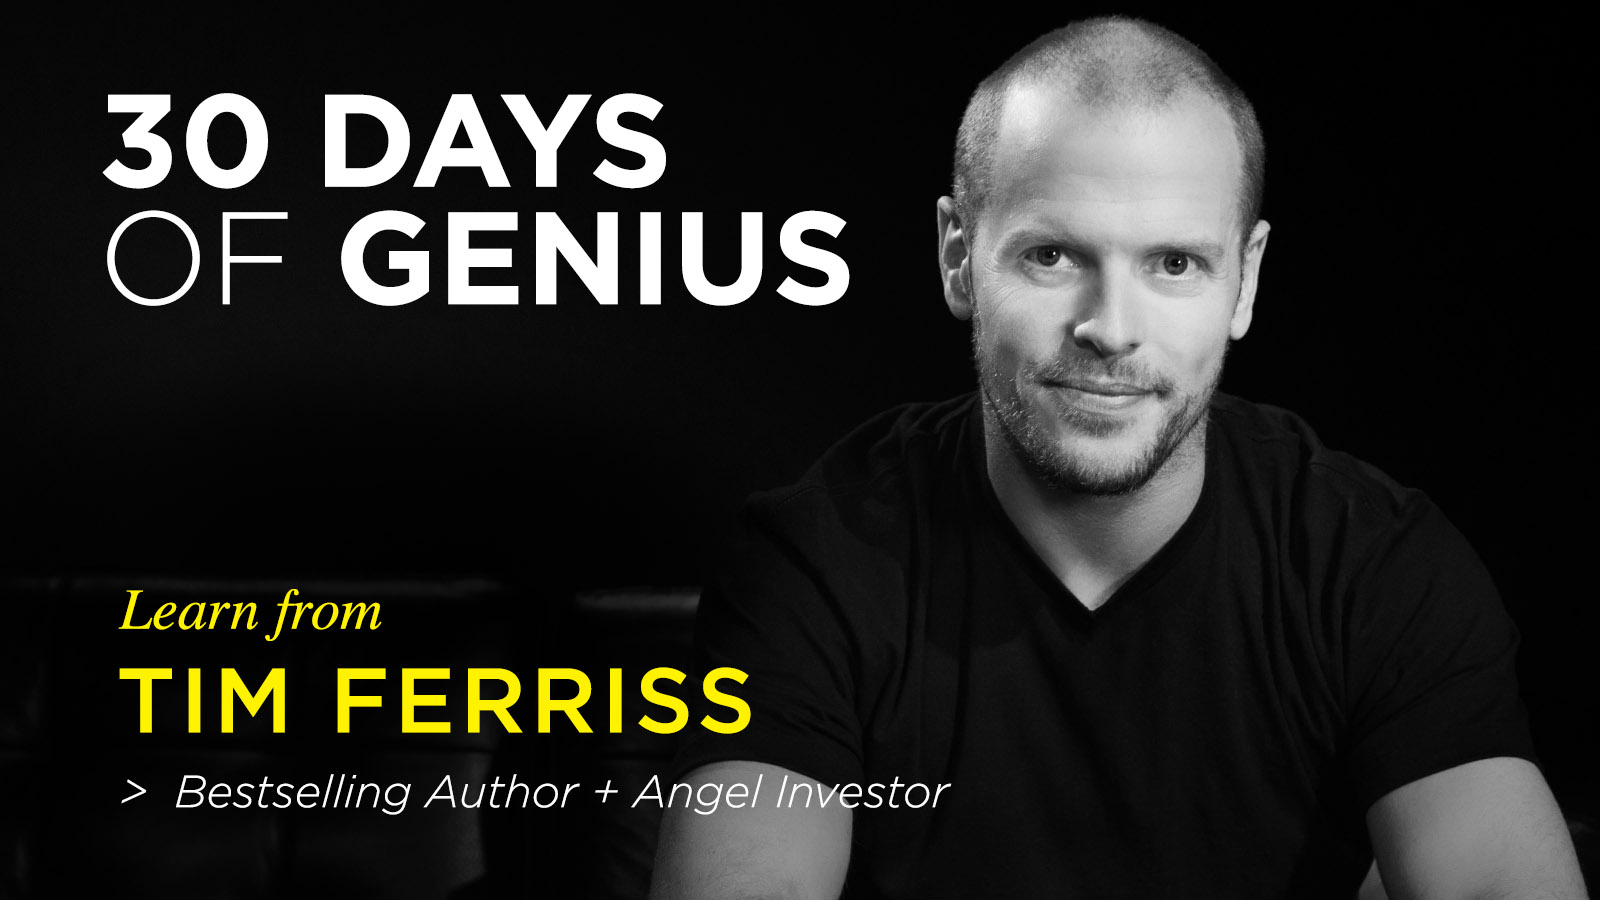 Tim Ferriss: Creativity, Habits and Rigging the Game